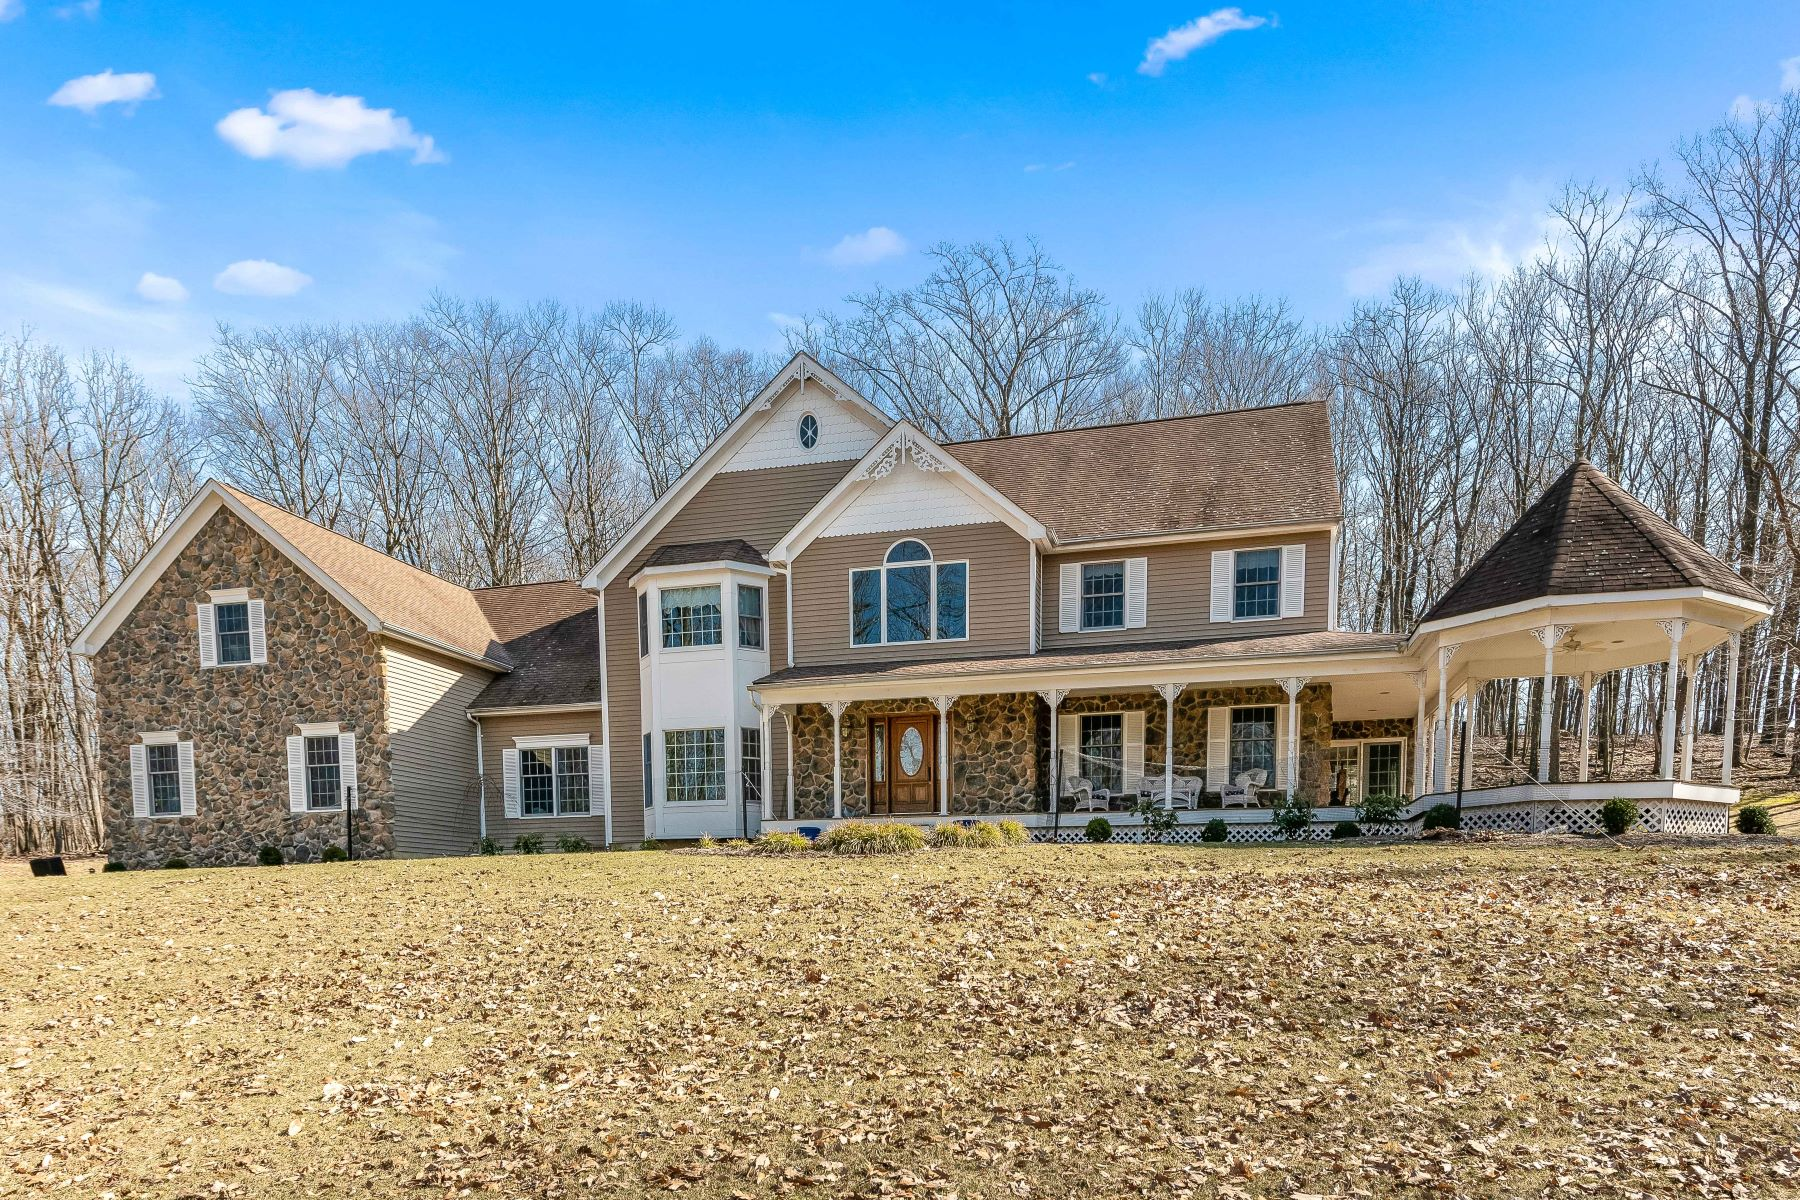 Single Family Homes for Sale at Stunning Tewksbury Colonial 29A Philhower Road Tewksbury Township, New Jersey 08833 United States